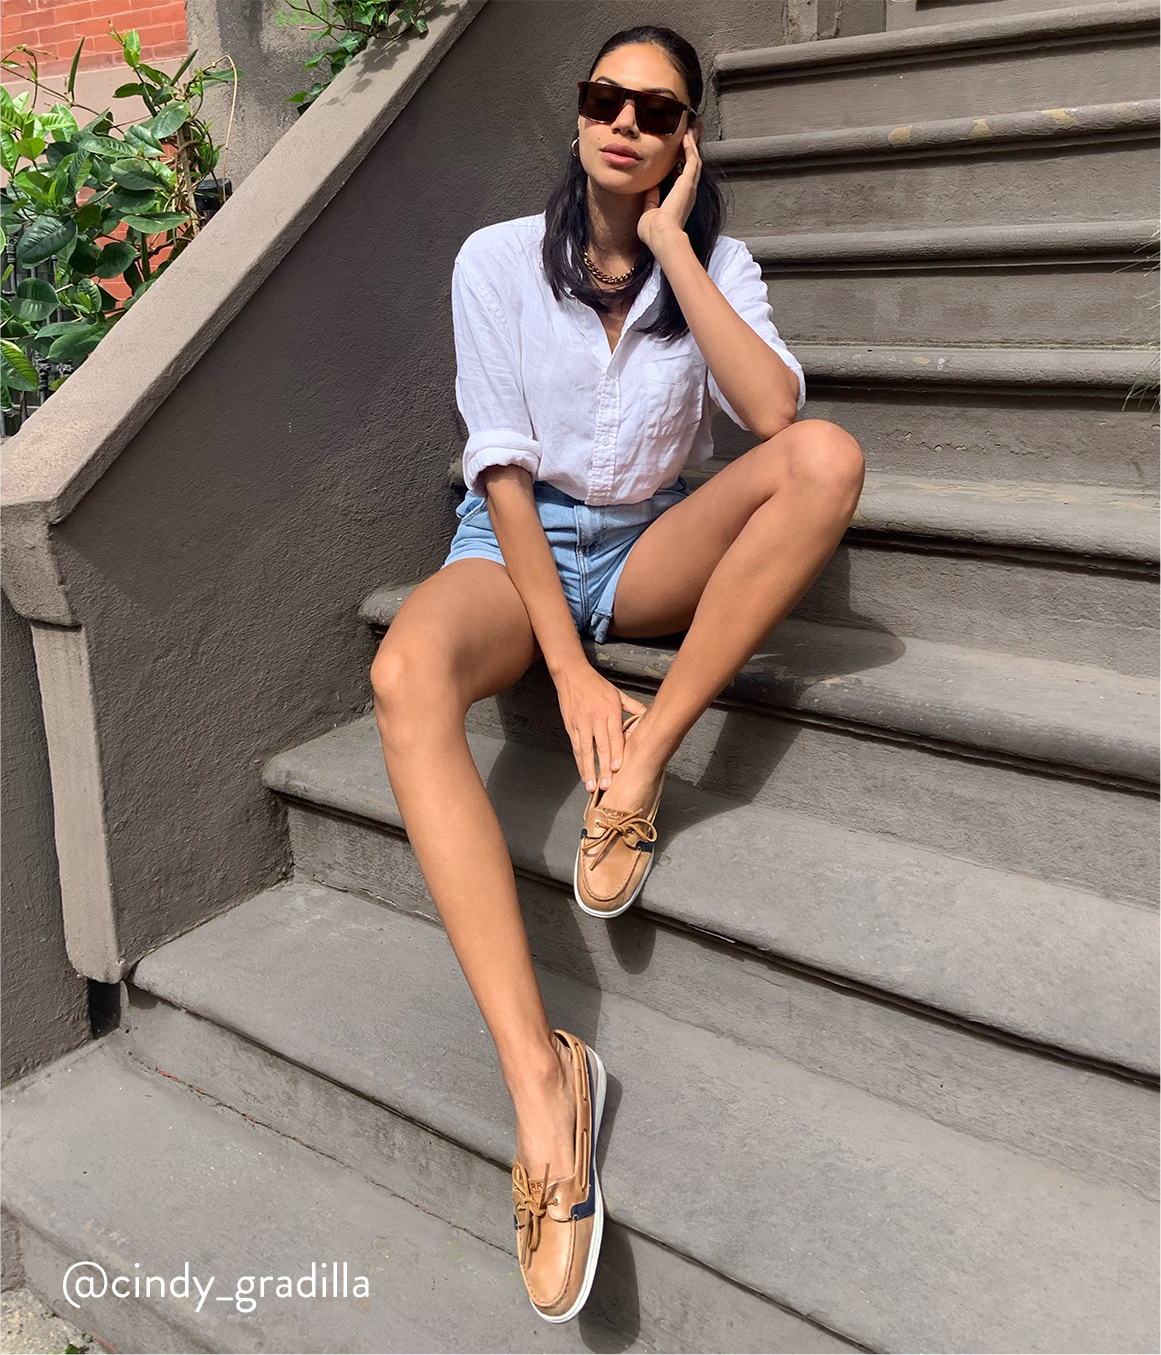 Person sitting on stairs wearing sunglasses and Sperry floats.